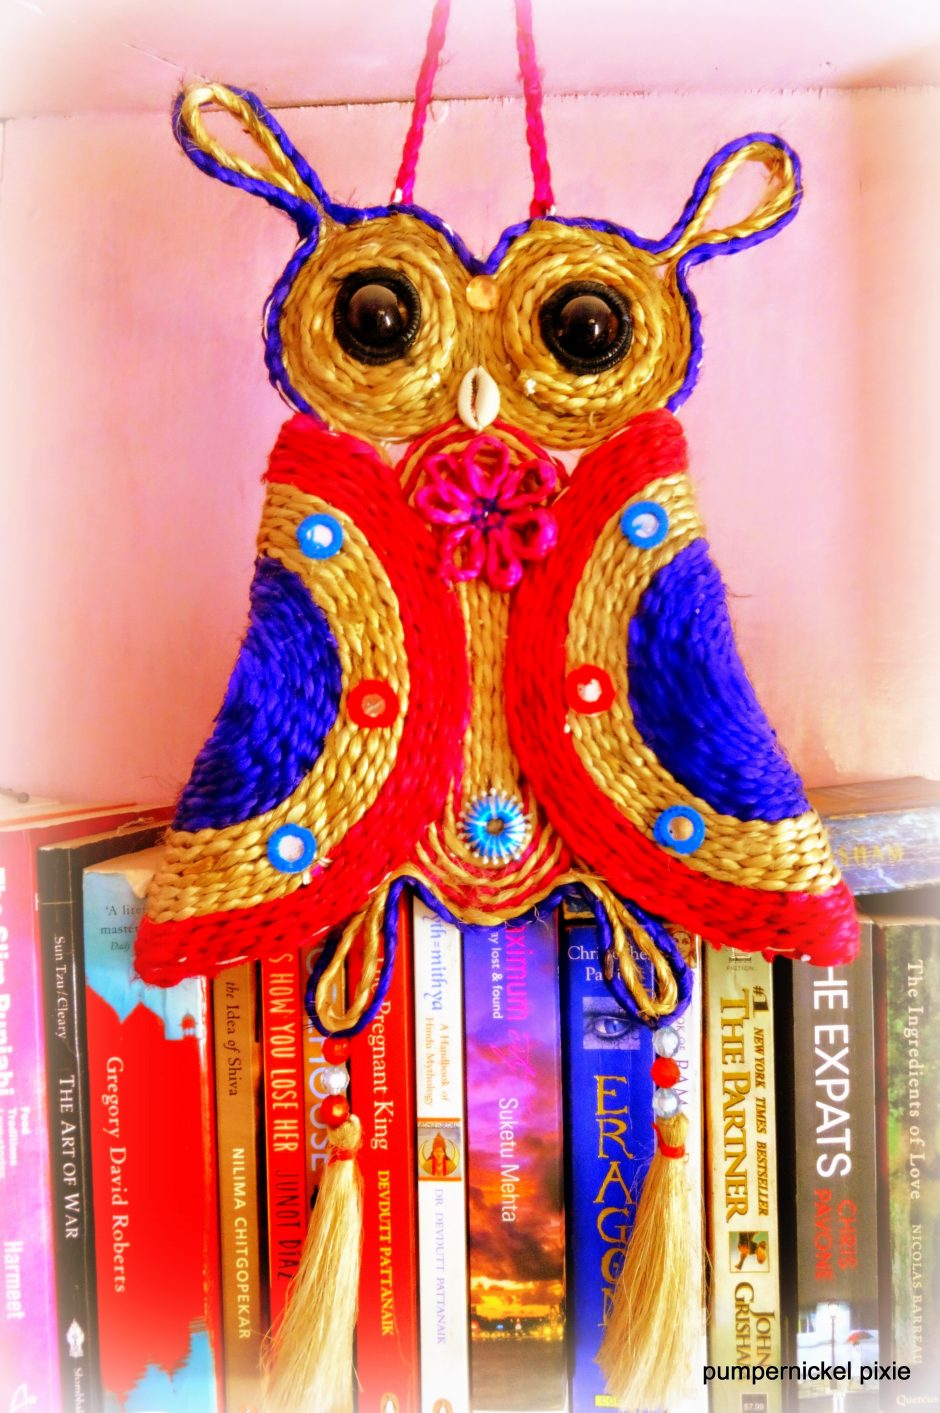 books library reading jute owl wise owl one week one photo on pumpernickel pixie